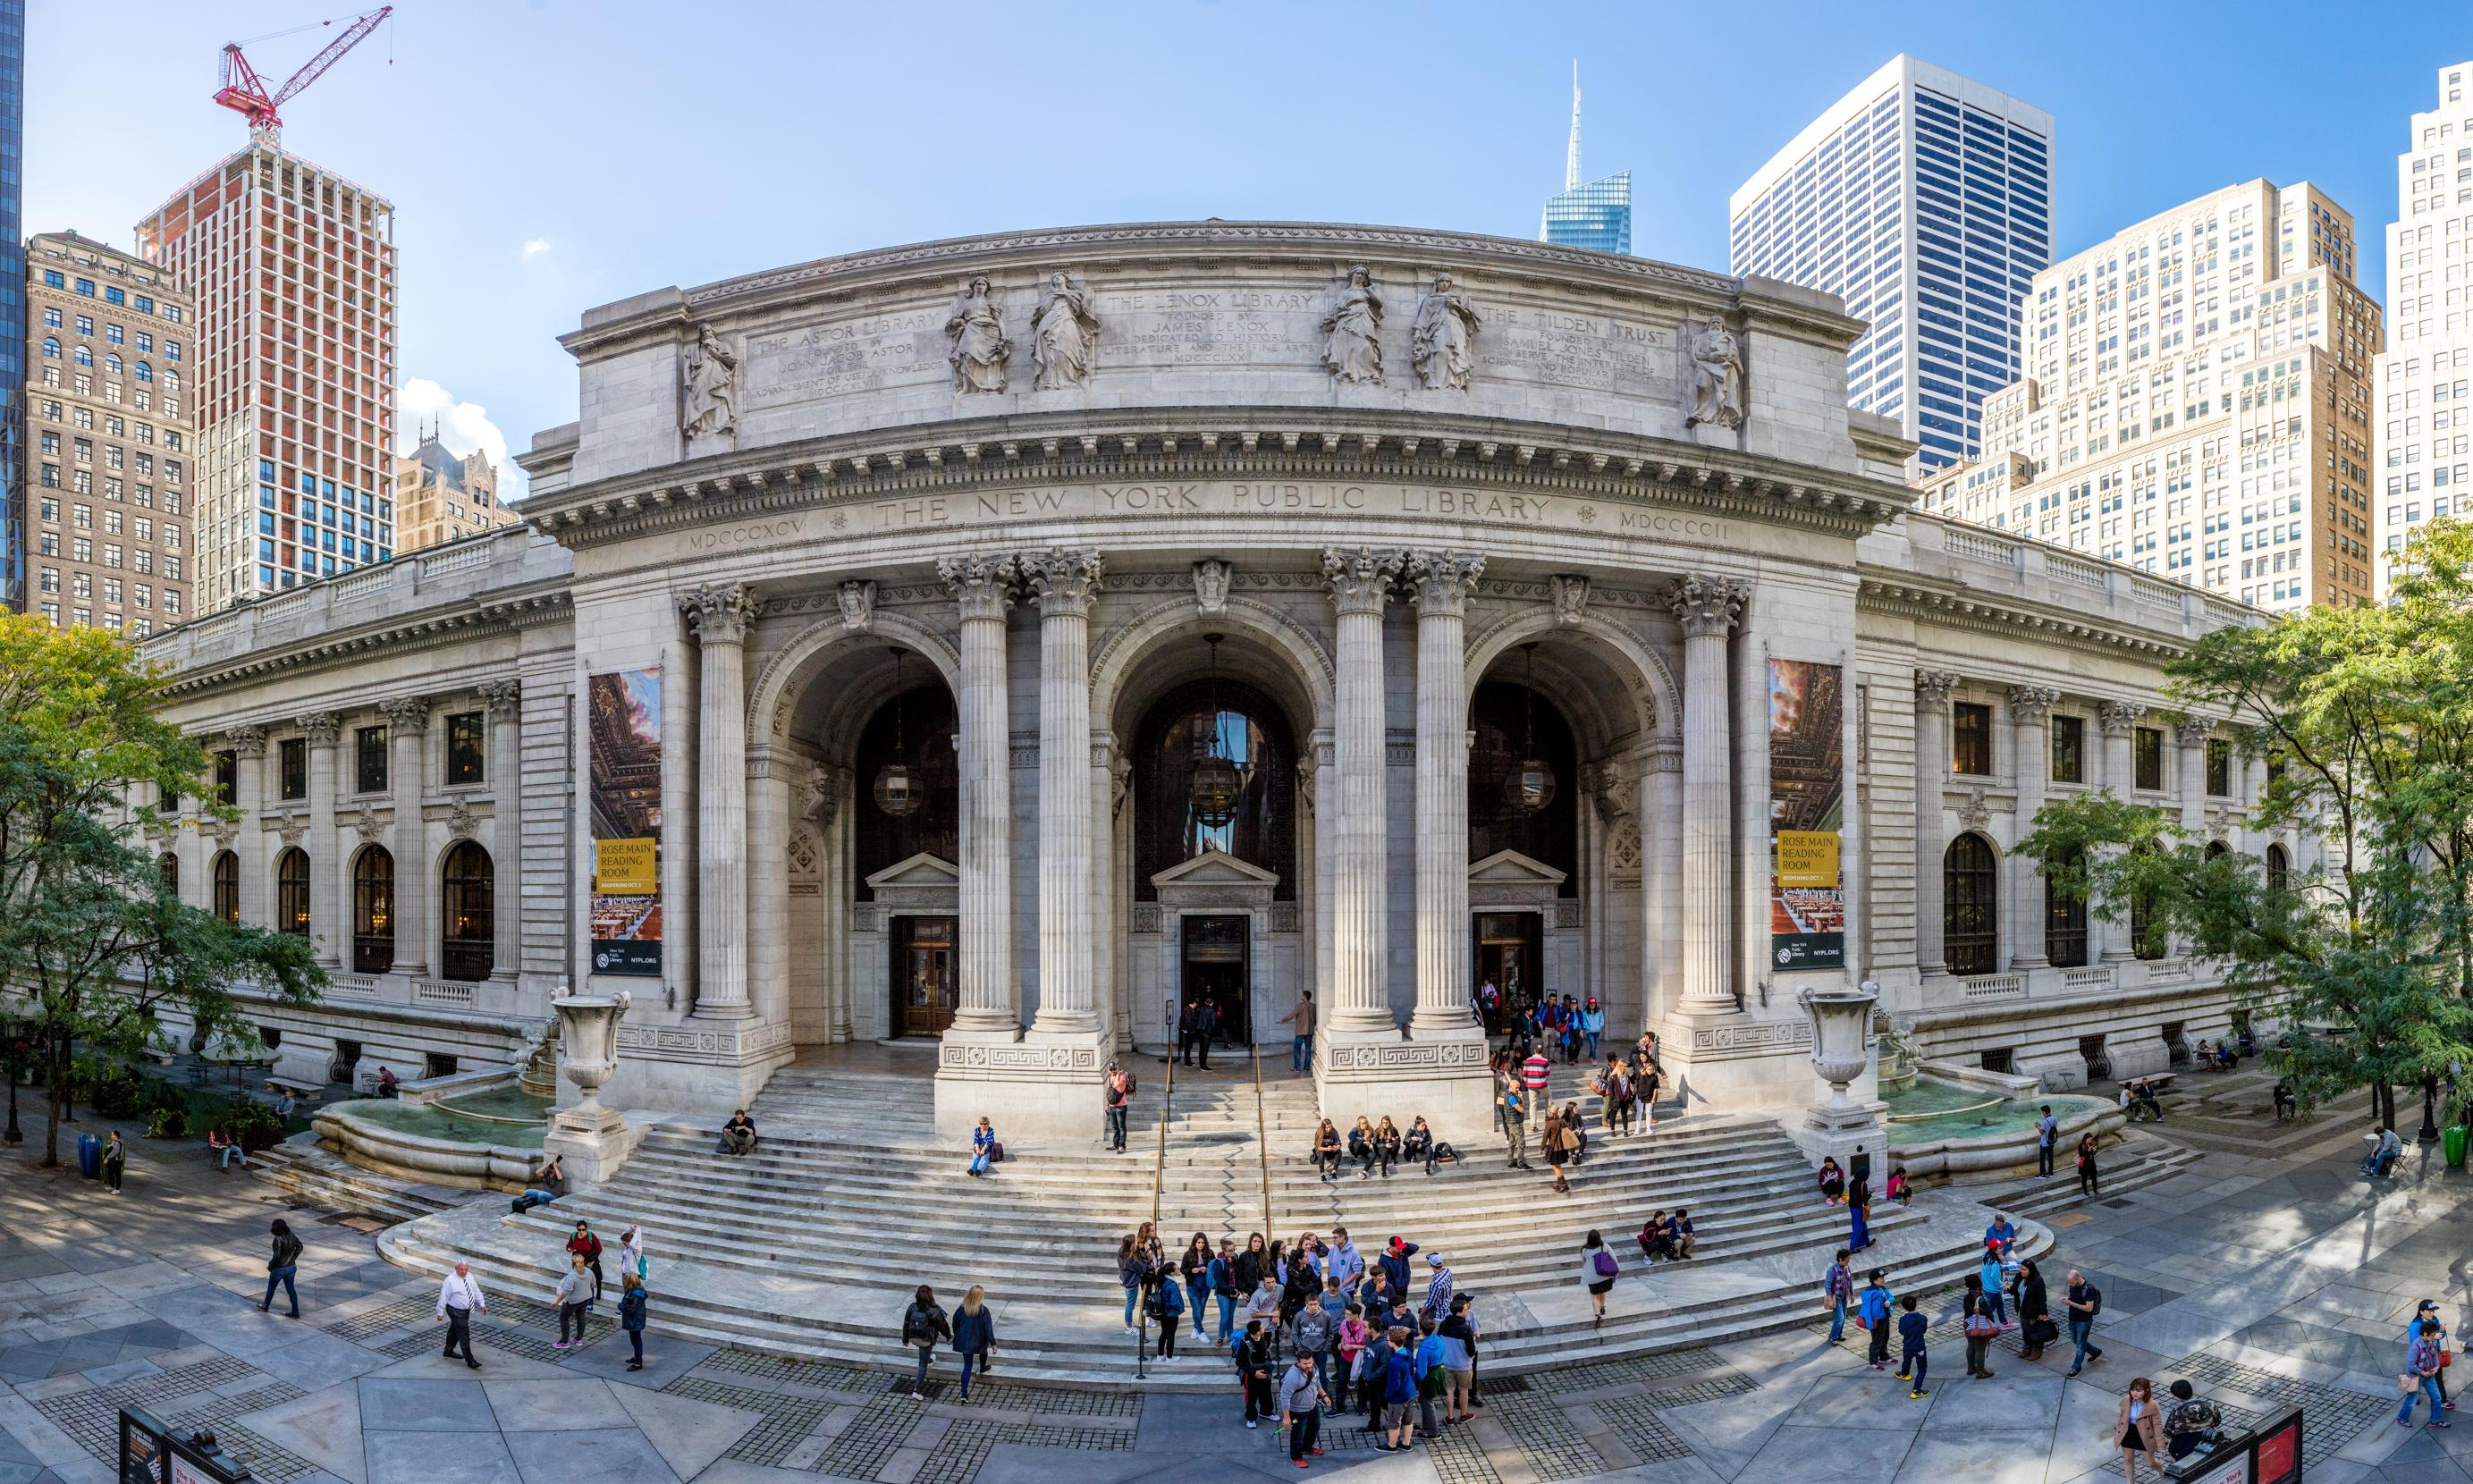 New York Public Library cancels Saudi-sponsored event